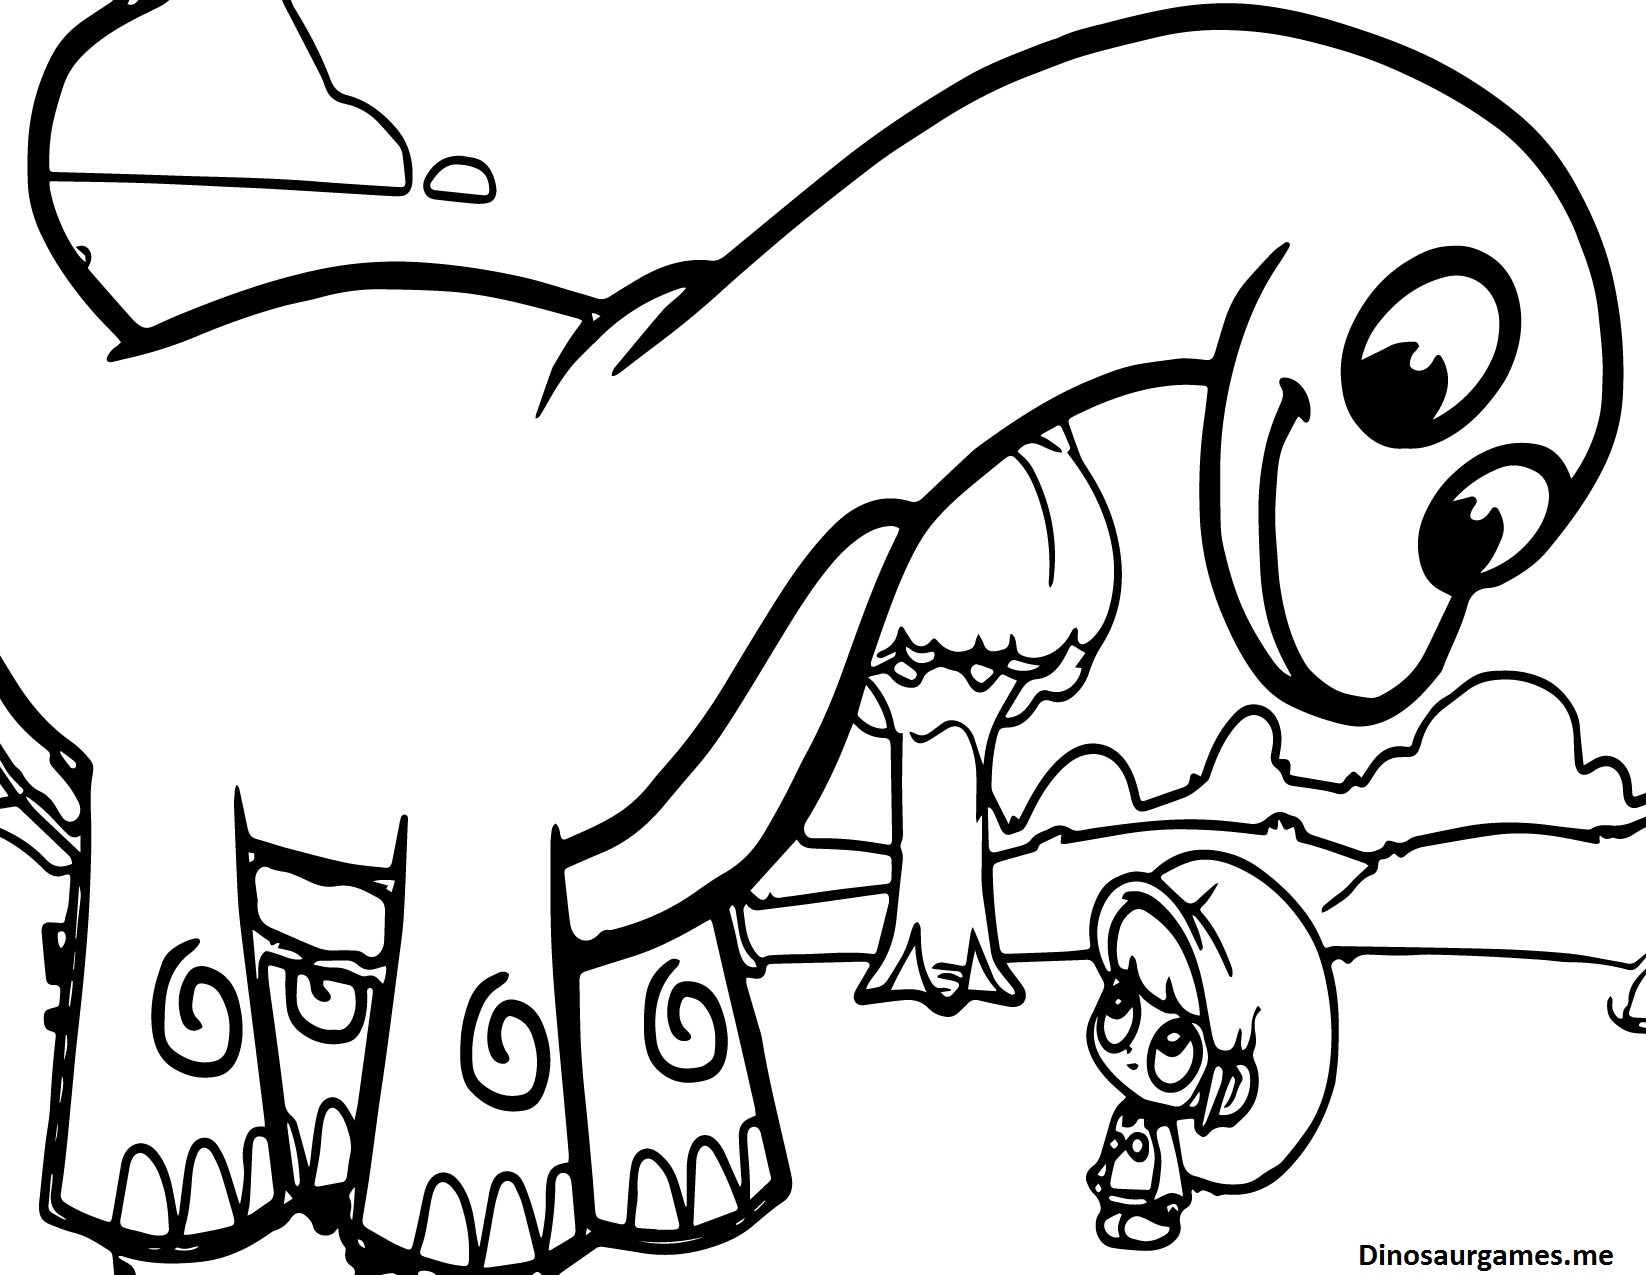 coloring pages dinosaurs baby dinosaur coloring pages for kids dinosaurs pictures coloring dinosaurs pages 1 1